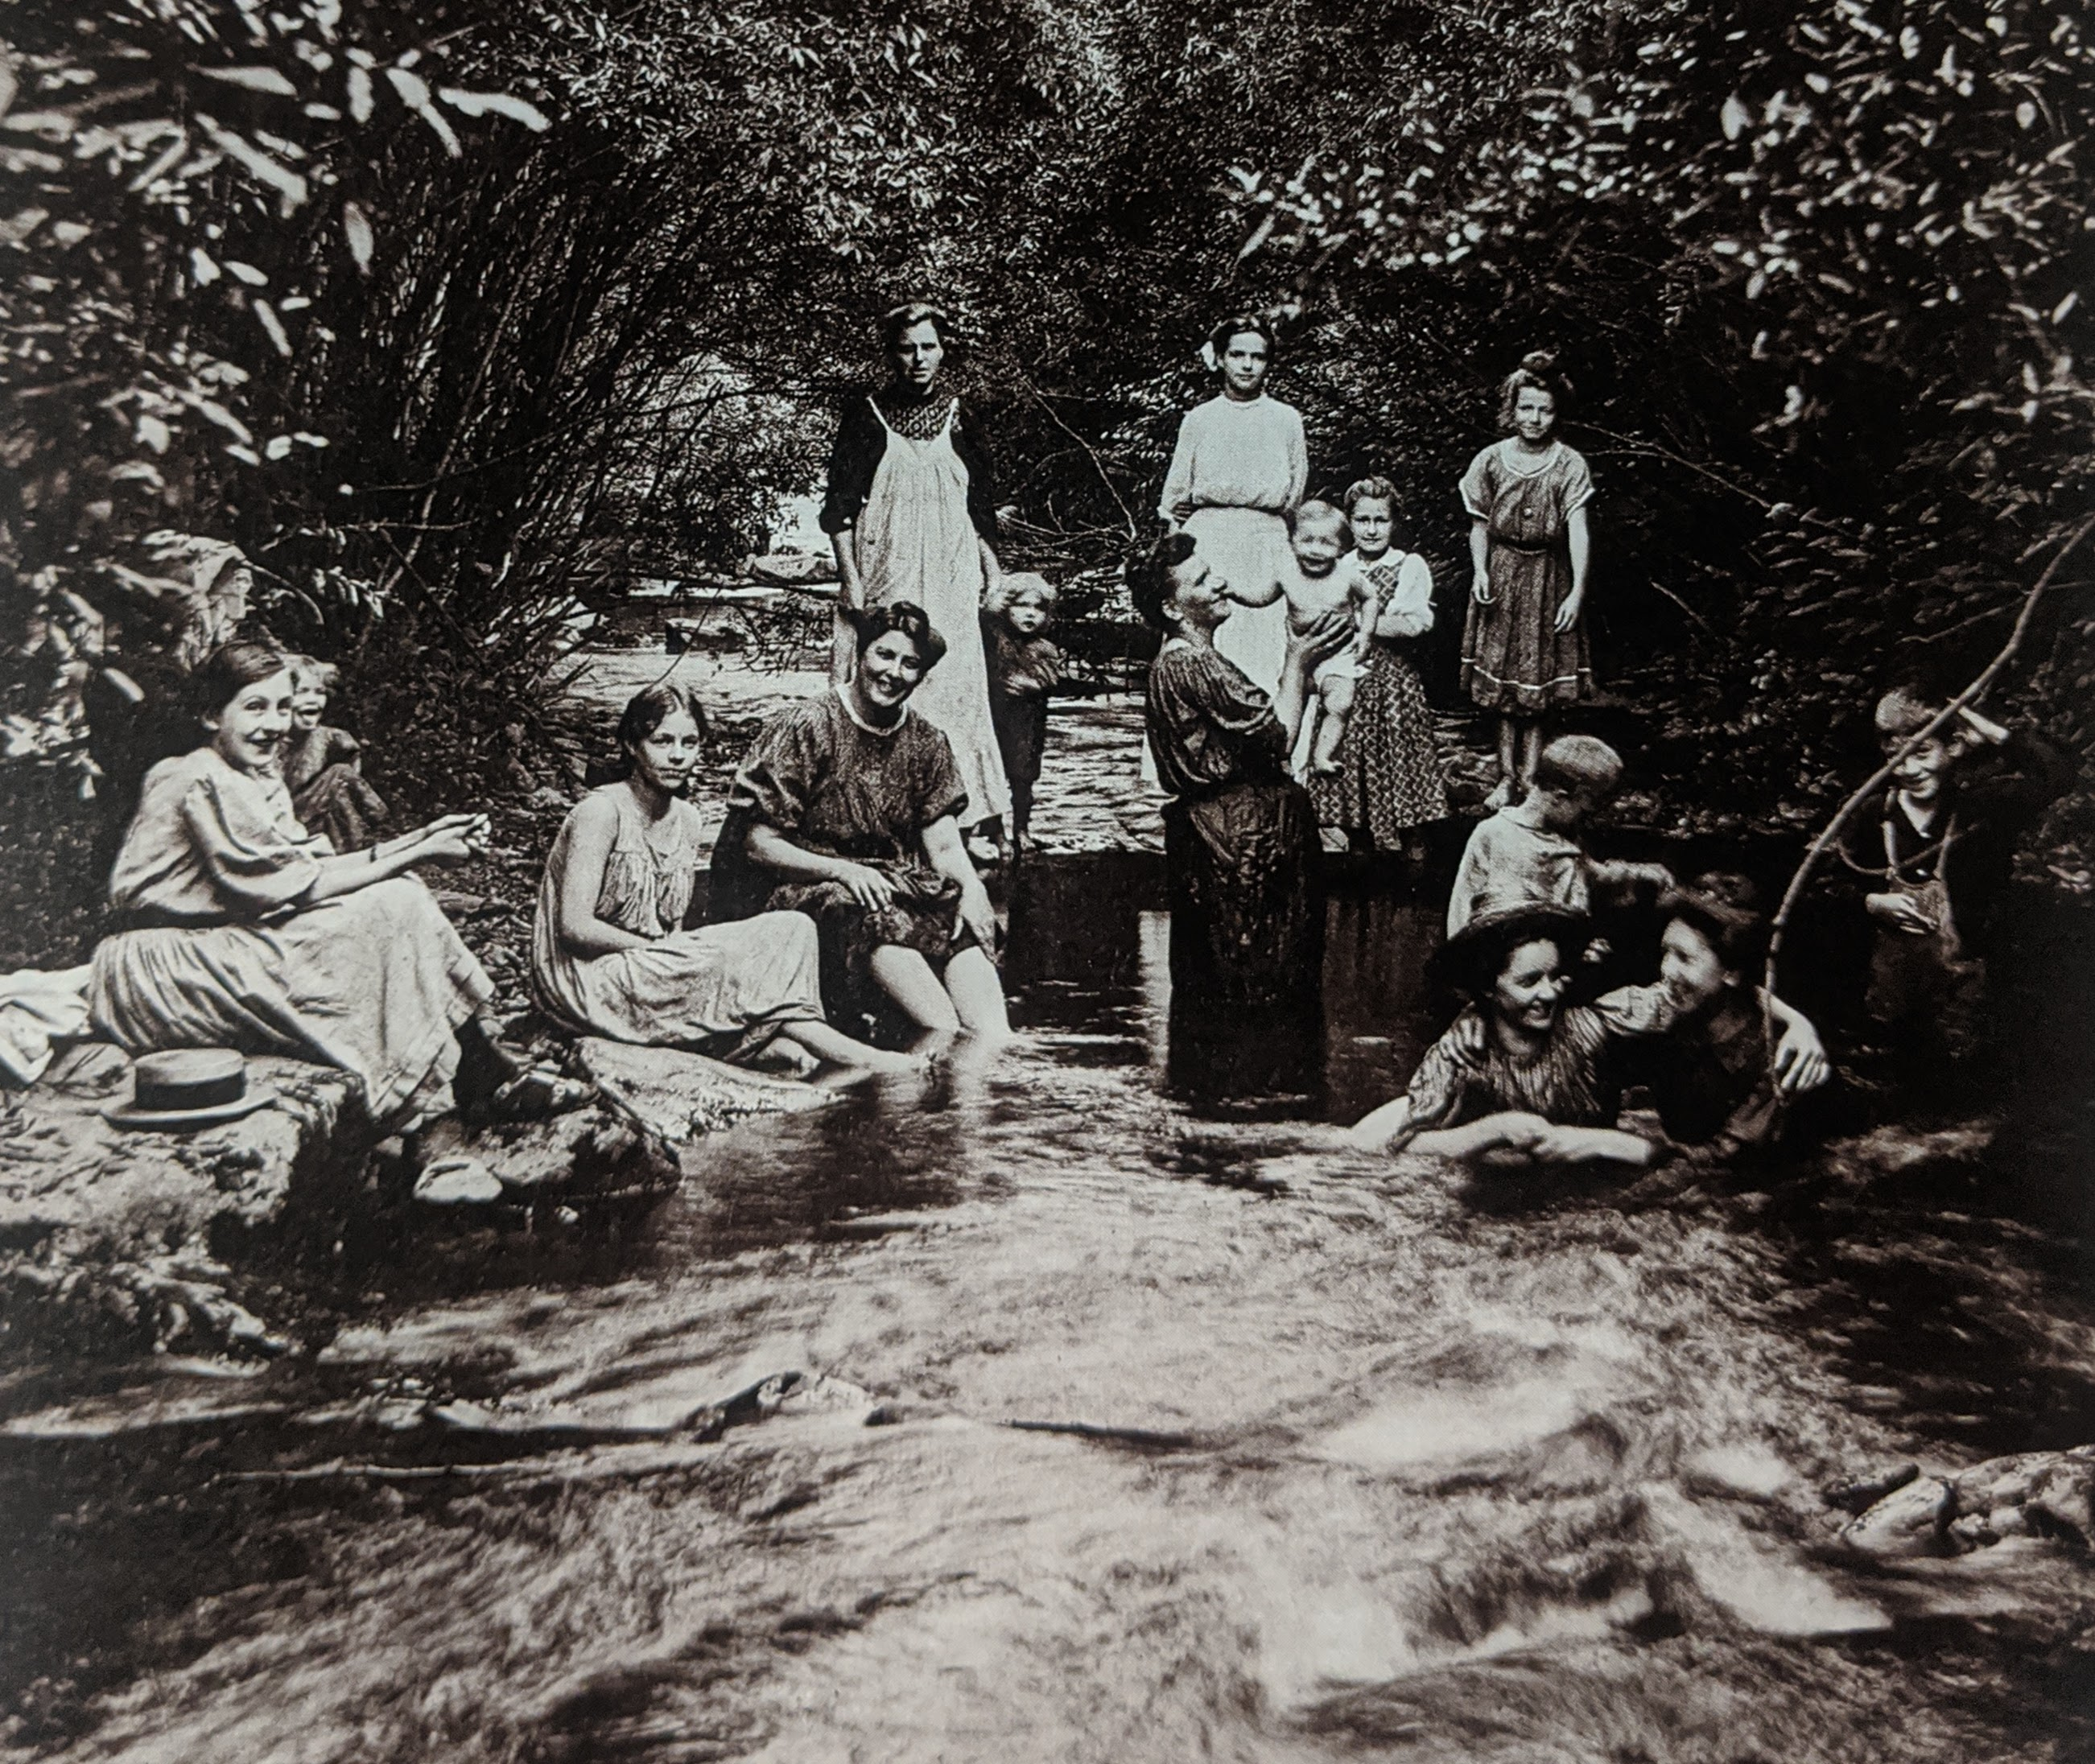 Photo taken by William T. Clarke. Women and children cooling off in creek on a hot day.